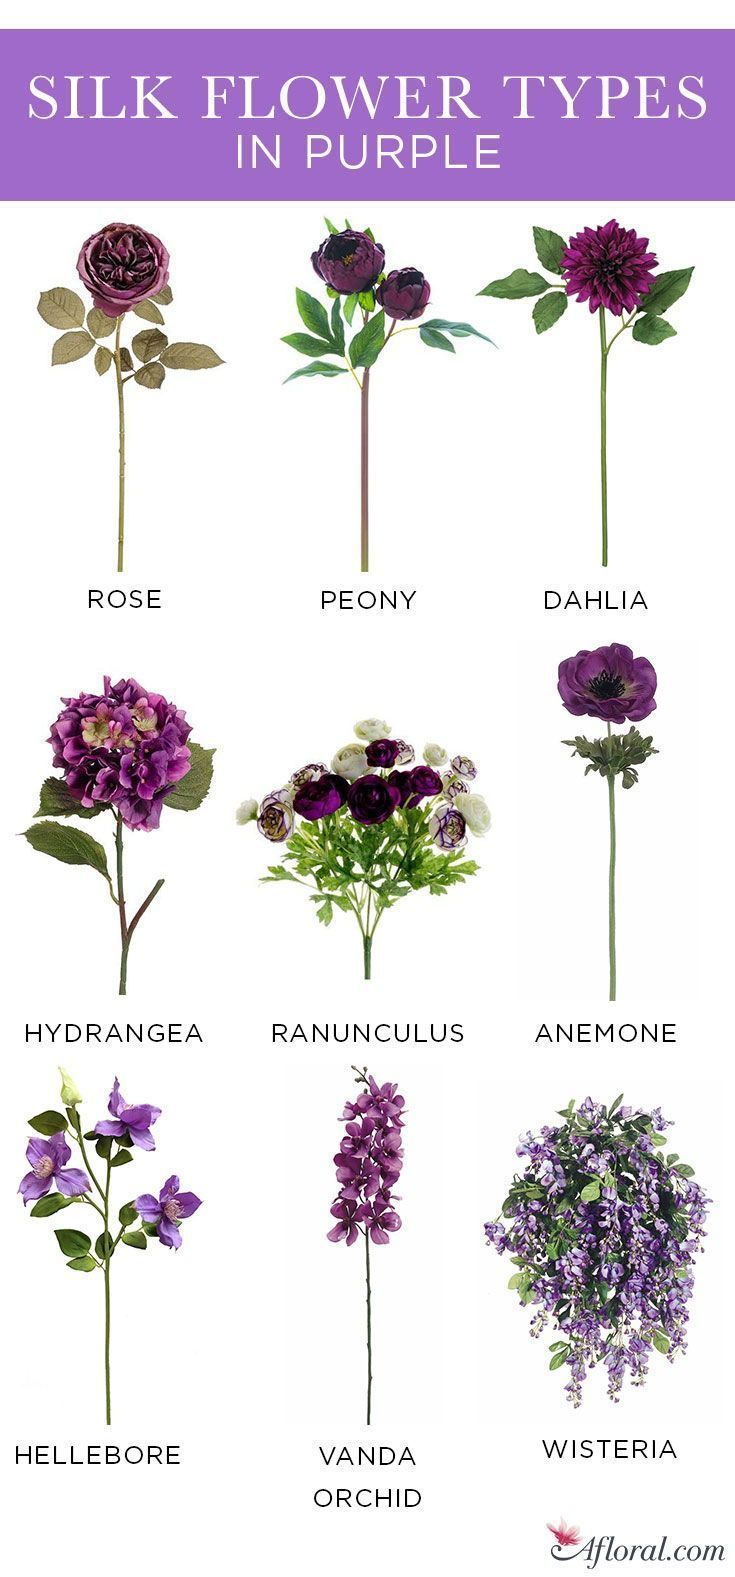 Here Are The Most Beautiful Silk Flower Collections To Make Your Event Special 2019 Flowers Decor Types Of Purple Flowers Types Of Flowers Purple Flower Arrangements